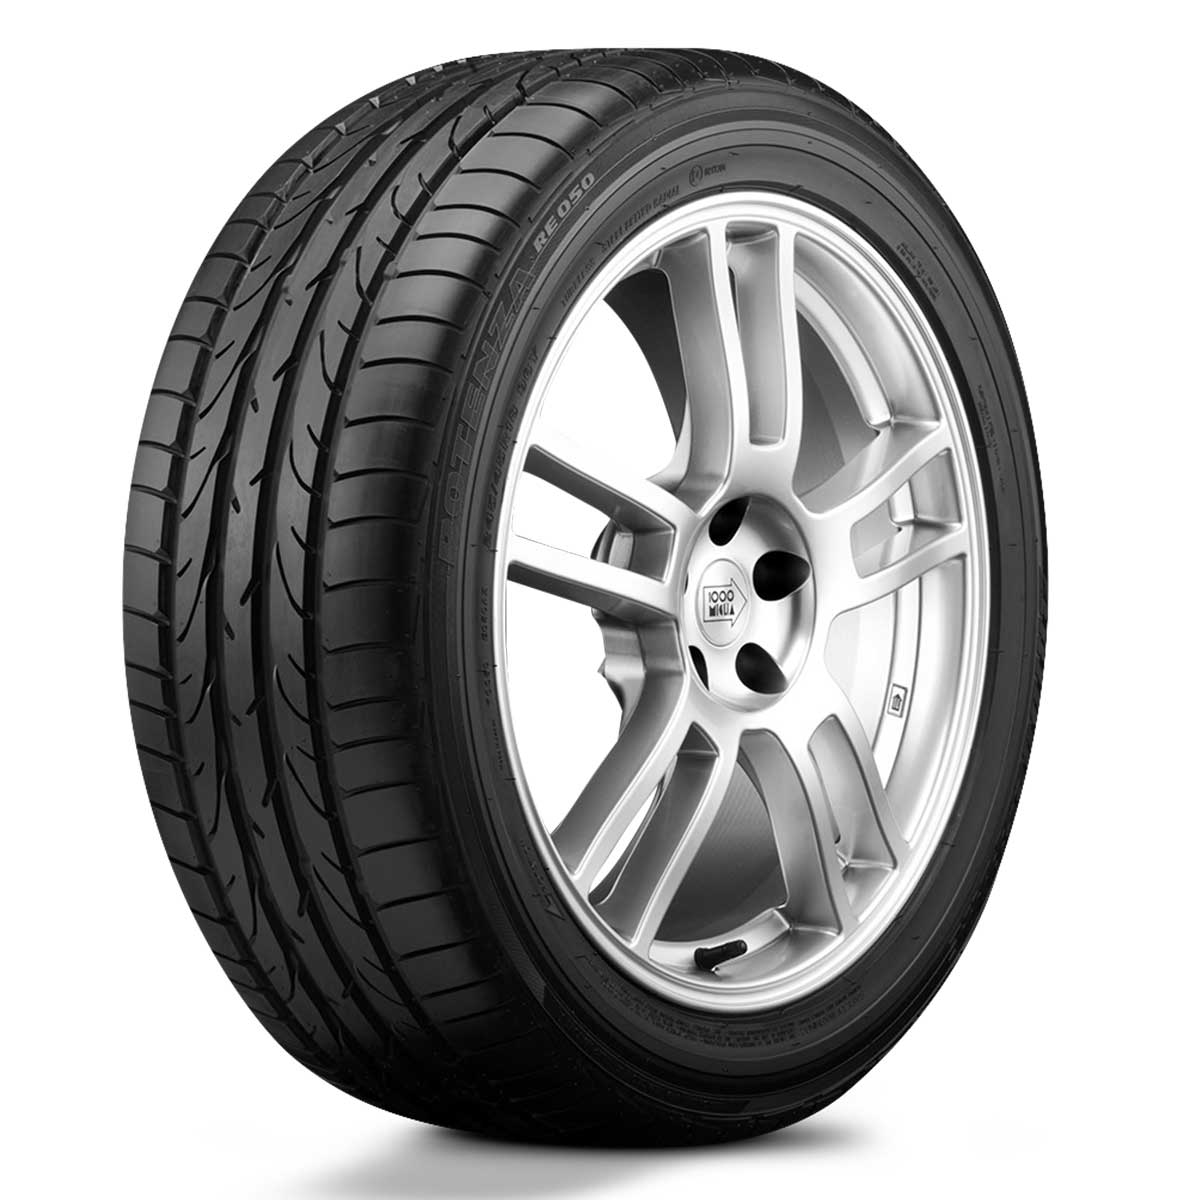 PNEU 225/50R17 94W POTENZA RE050 RUN FLAT BRIDGEST